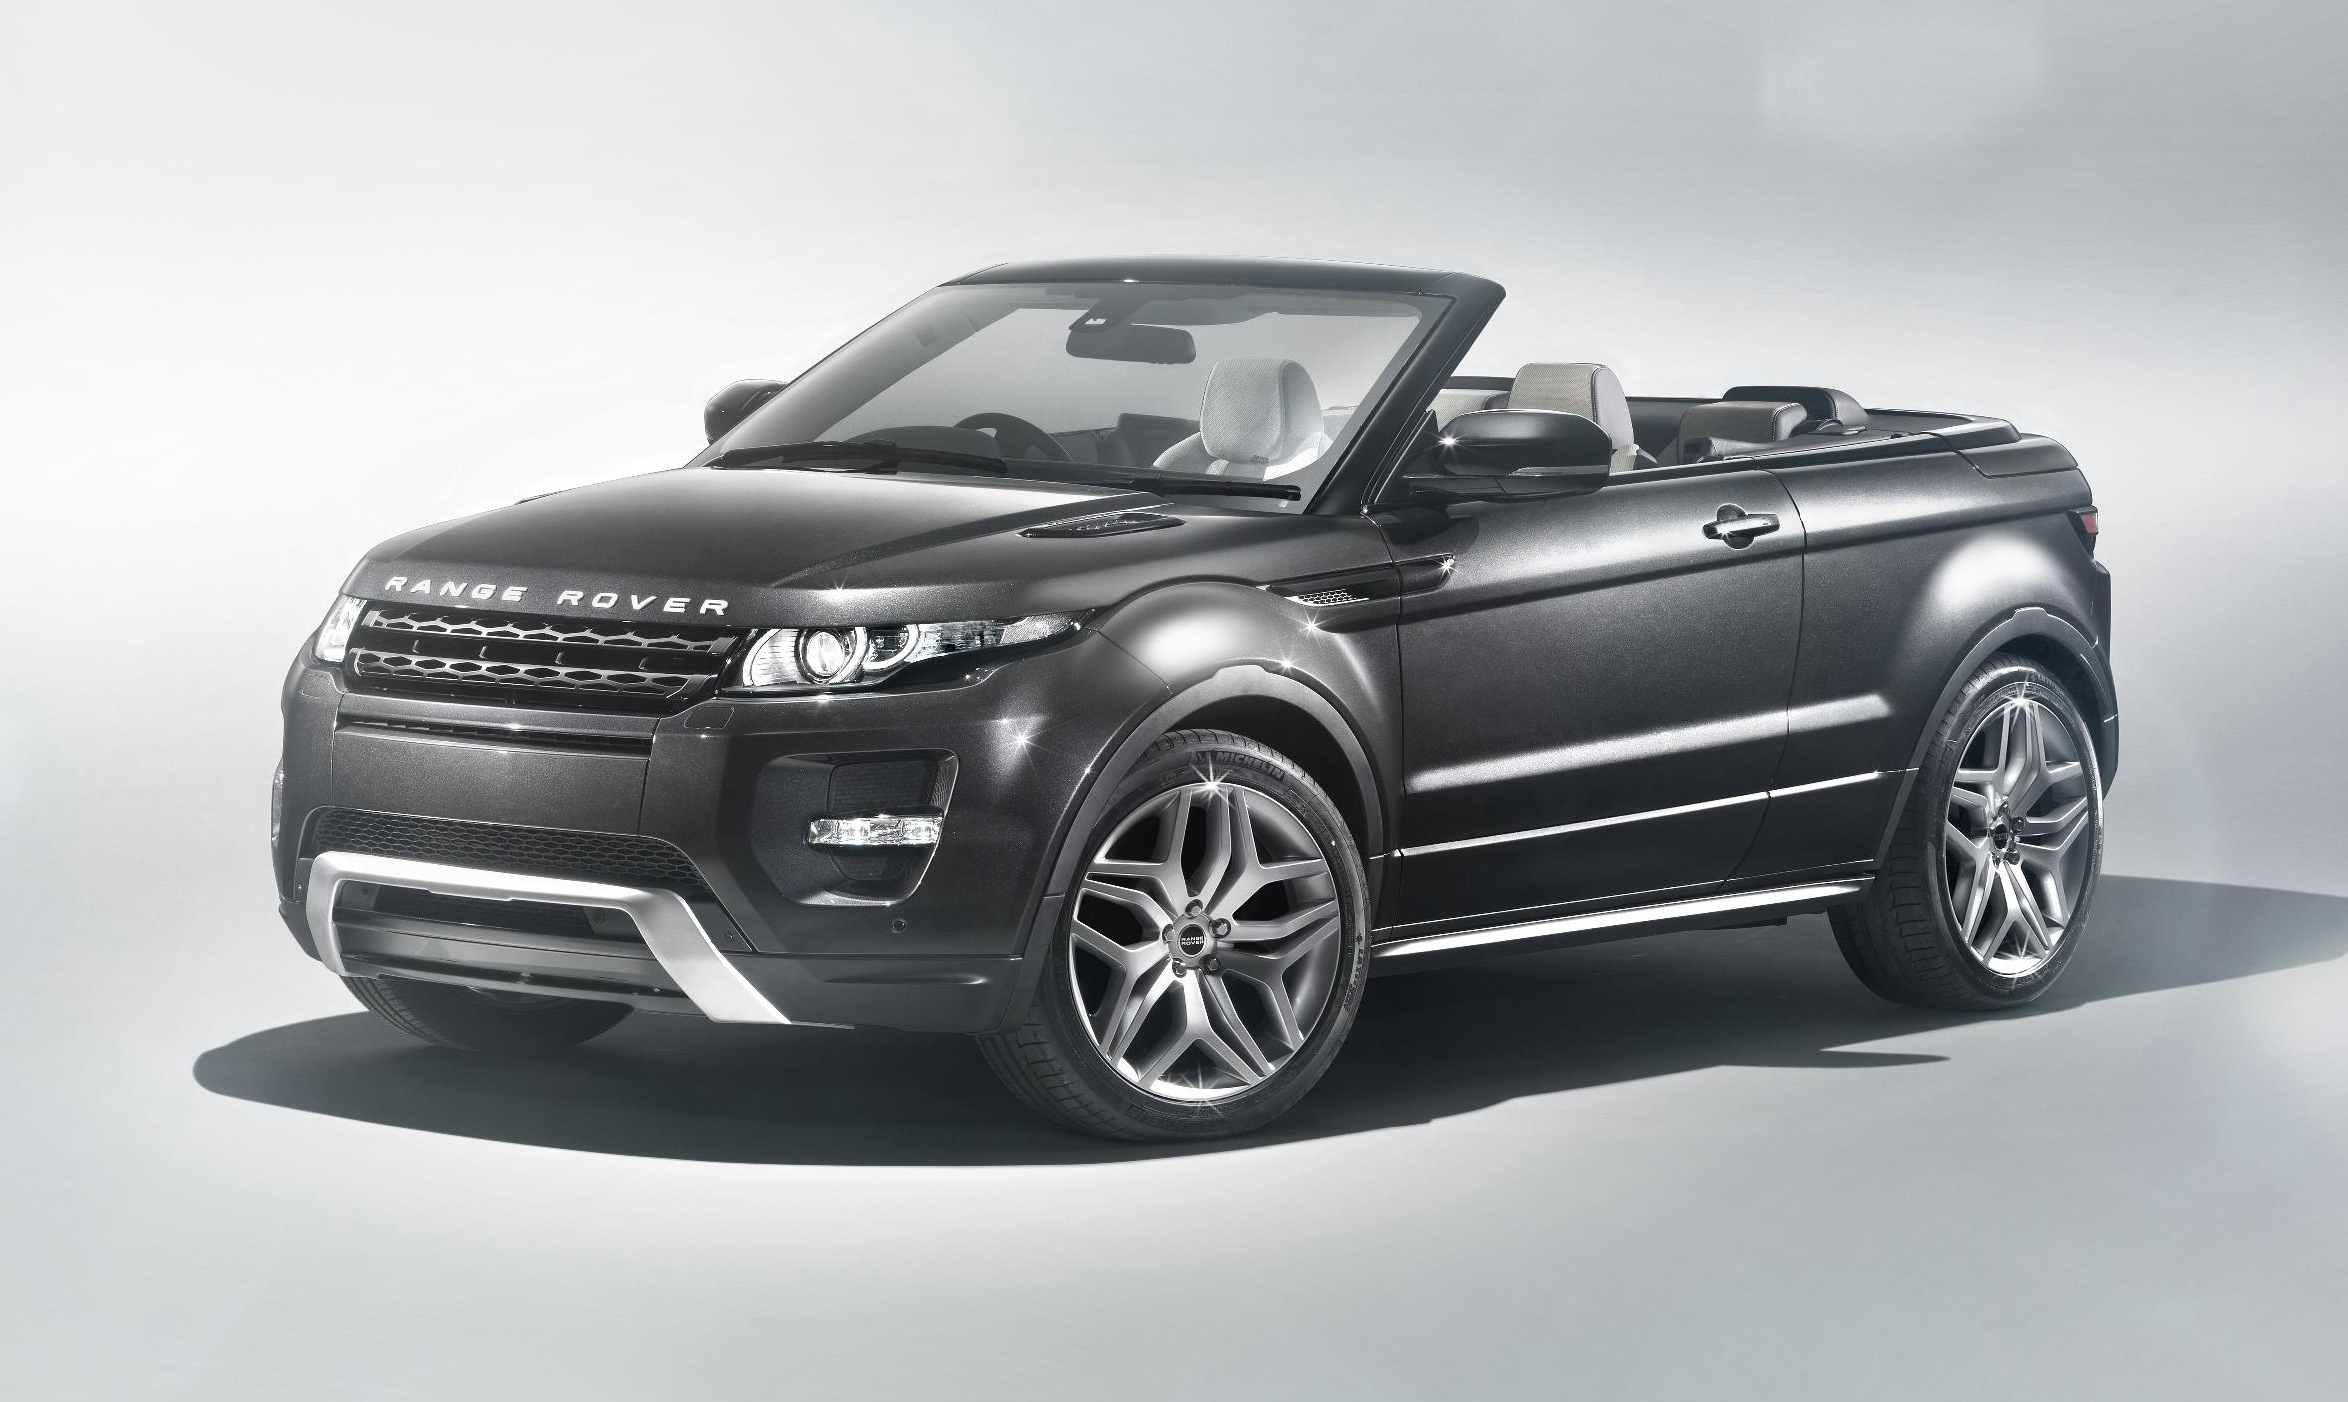 specifications and price convertible rover landrover land pricing photos evoque rangeroverevoqueconvertible range